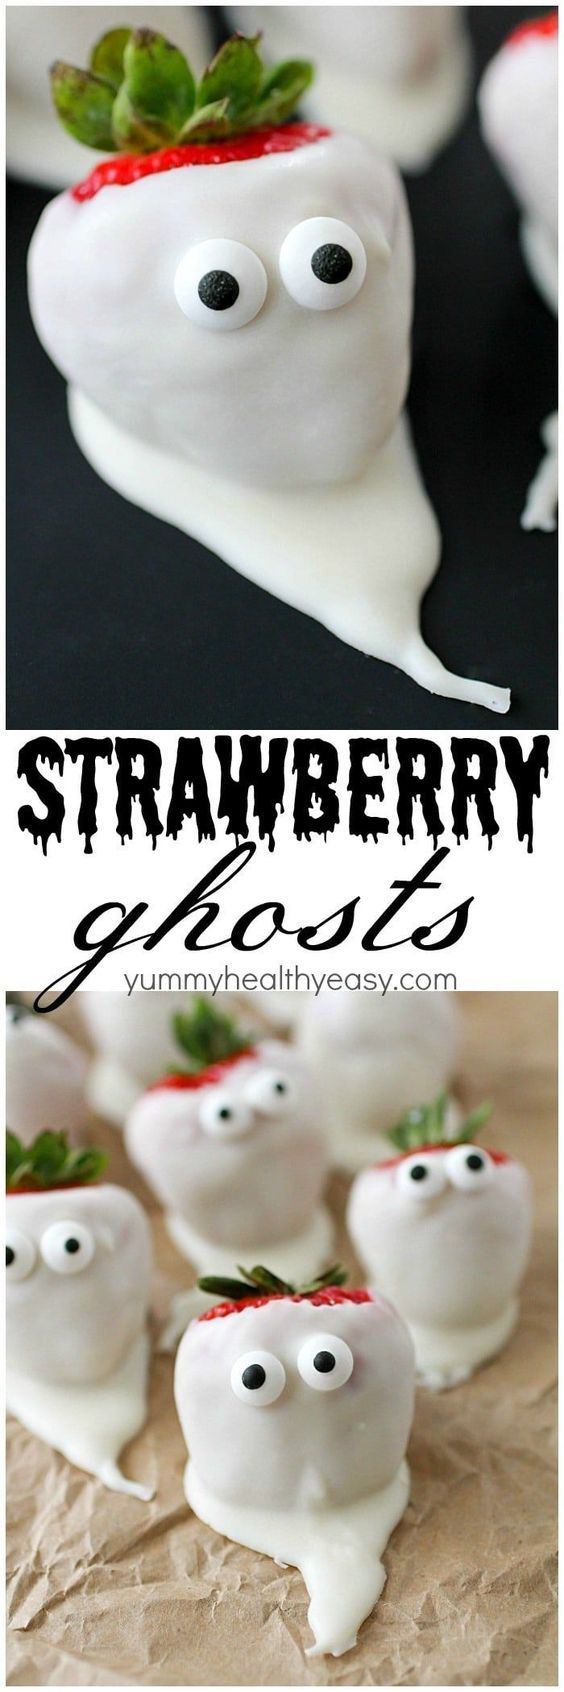 These Chocolate Covered Strawberry Ghosts will be the hit at your Halloween party! They're cute and spooky all at the same time, and so simple to make. Who doesn't love a chocolate covered strawberry?!